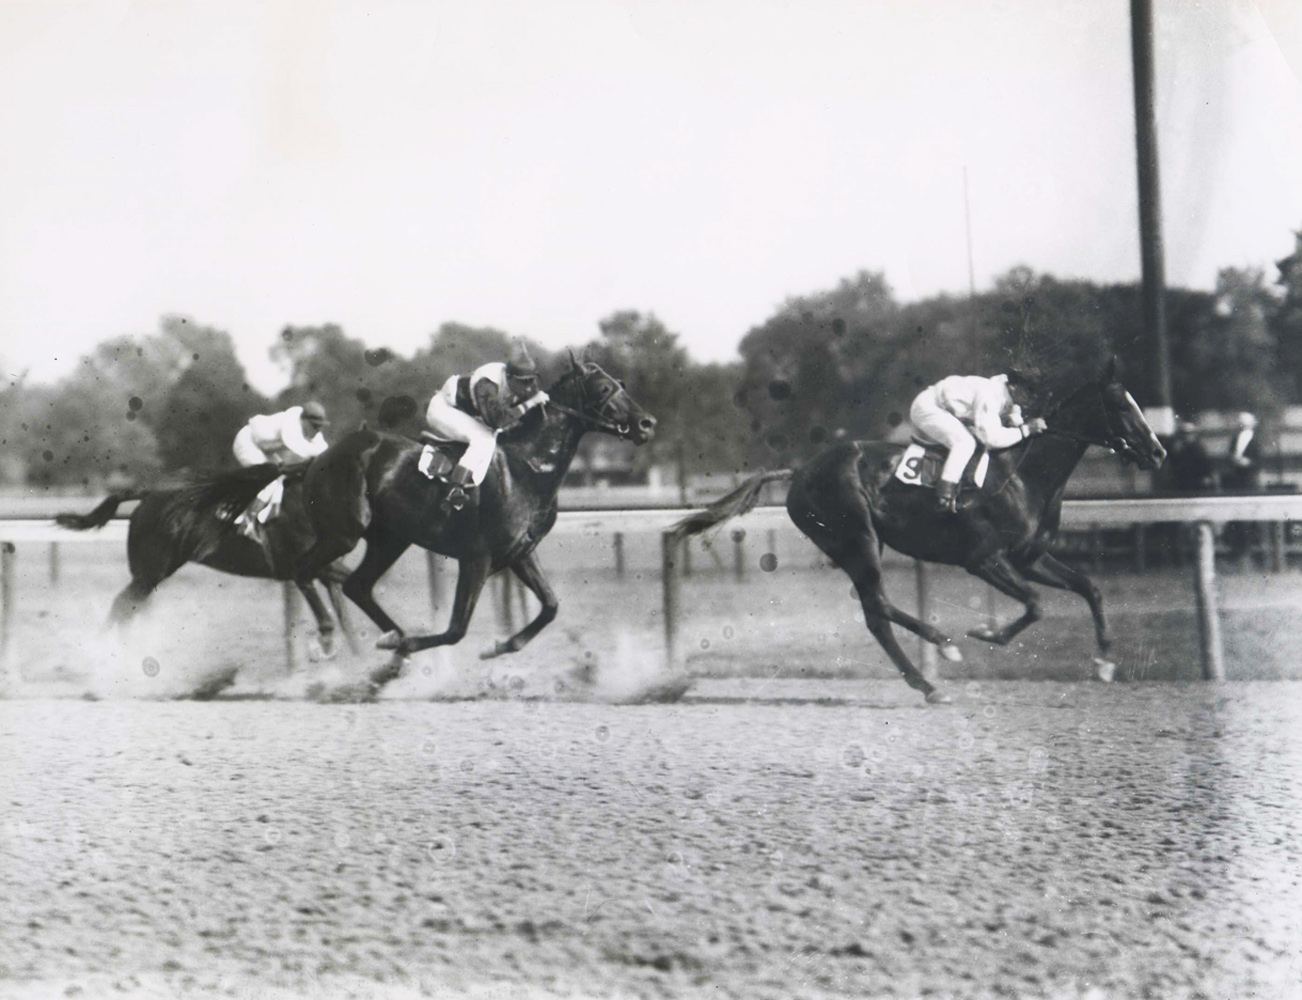 Regret (Joe Notter up) winning the 1914 Sanford Memorial Stakes at Saratoga (Keeneland Library Cook Collection/Museum Collection)